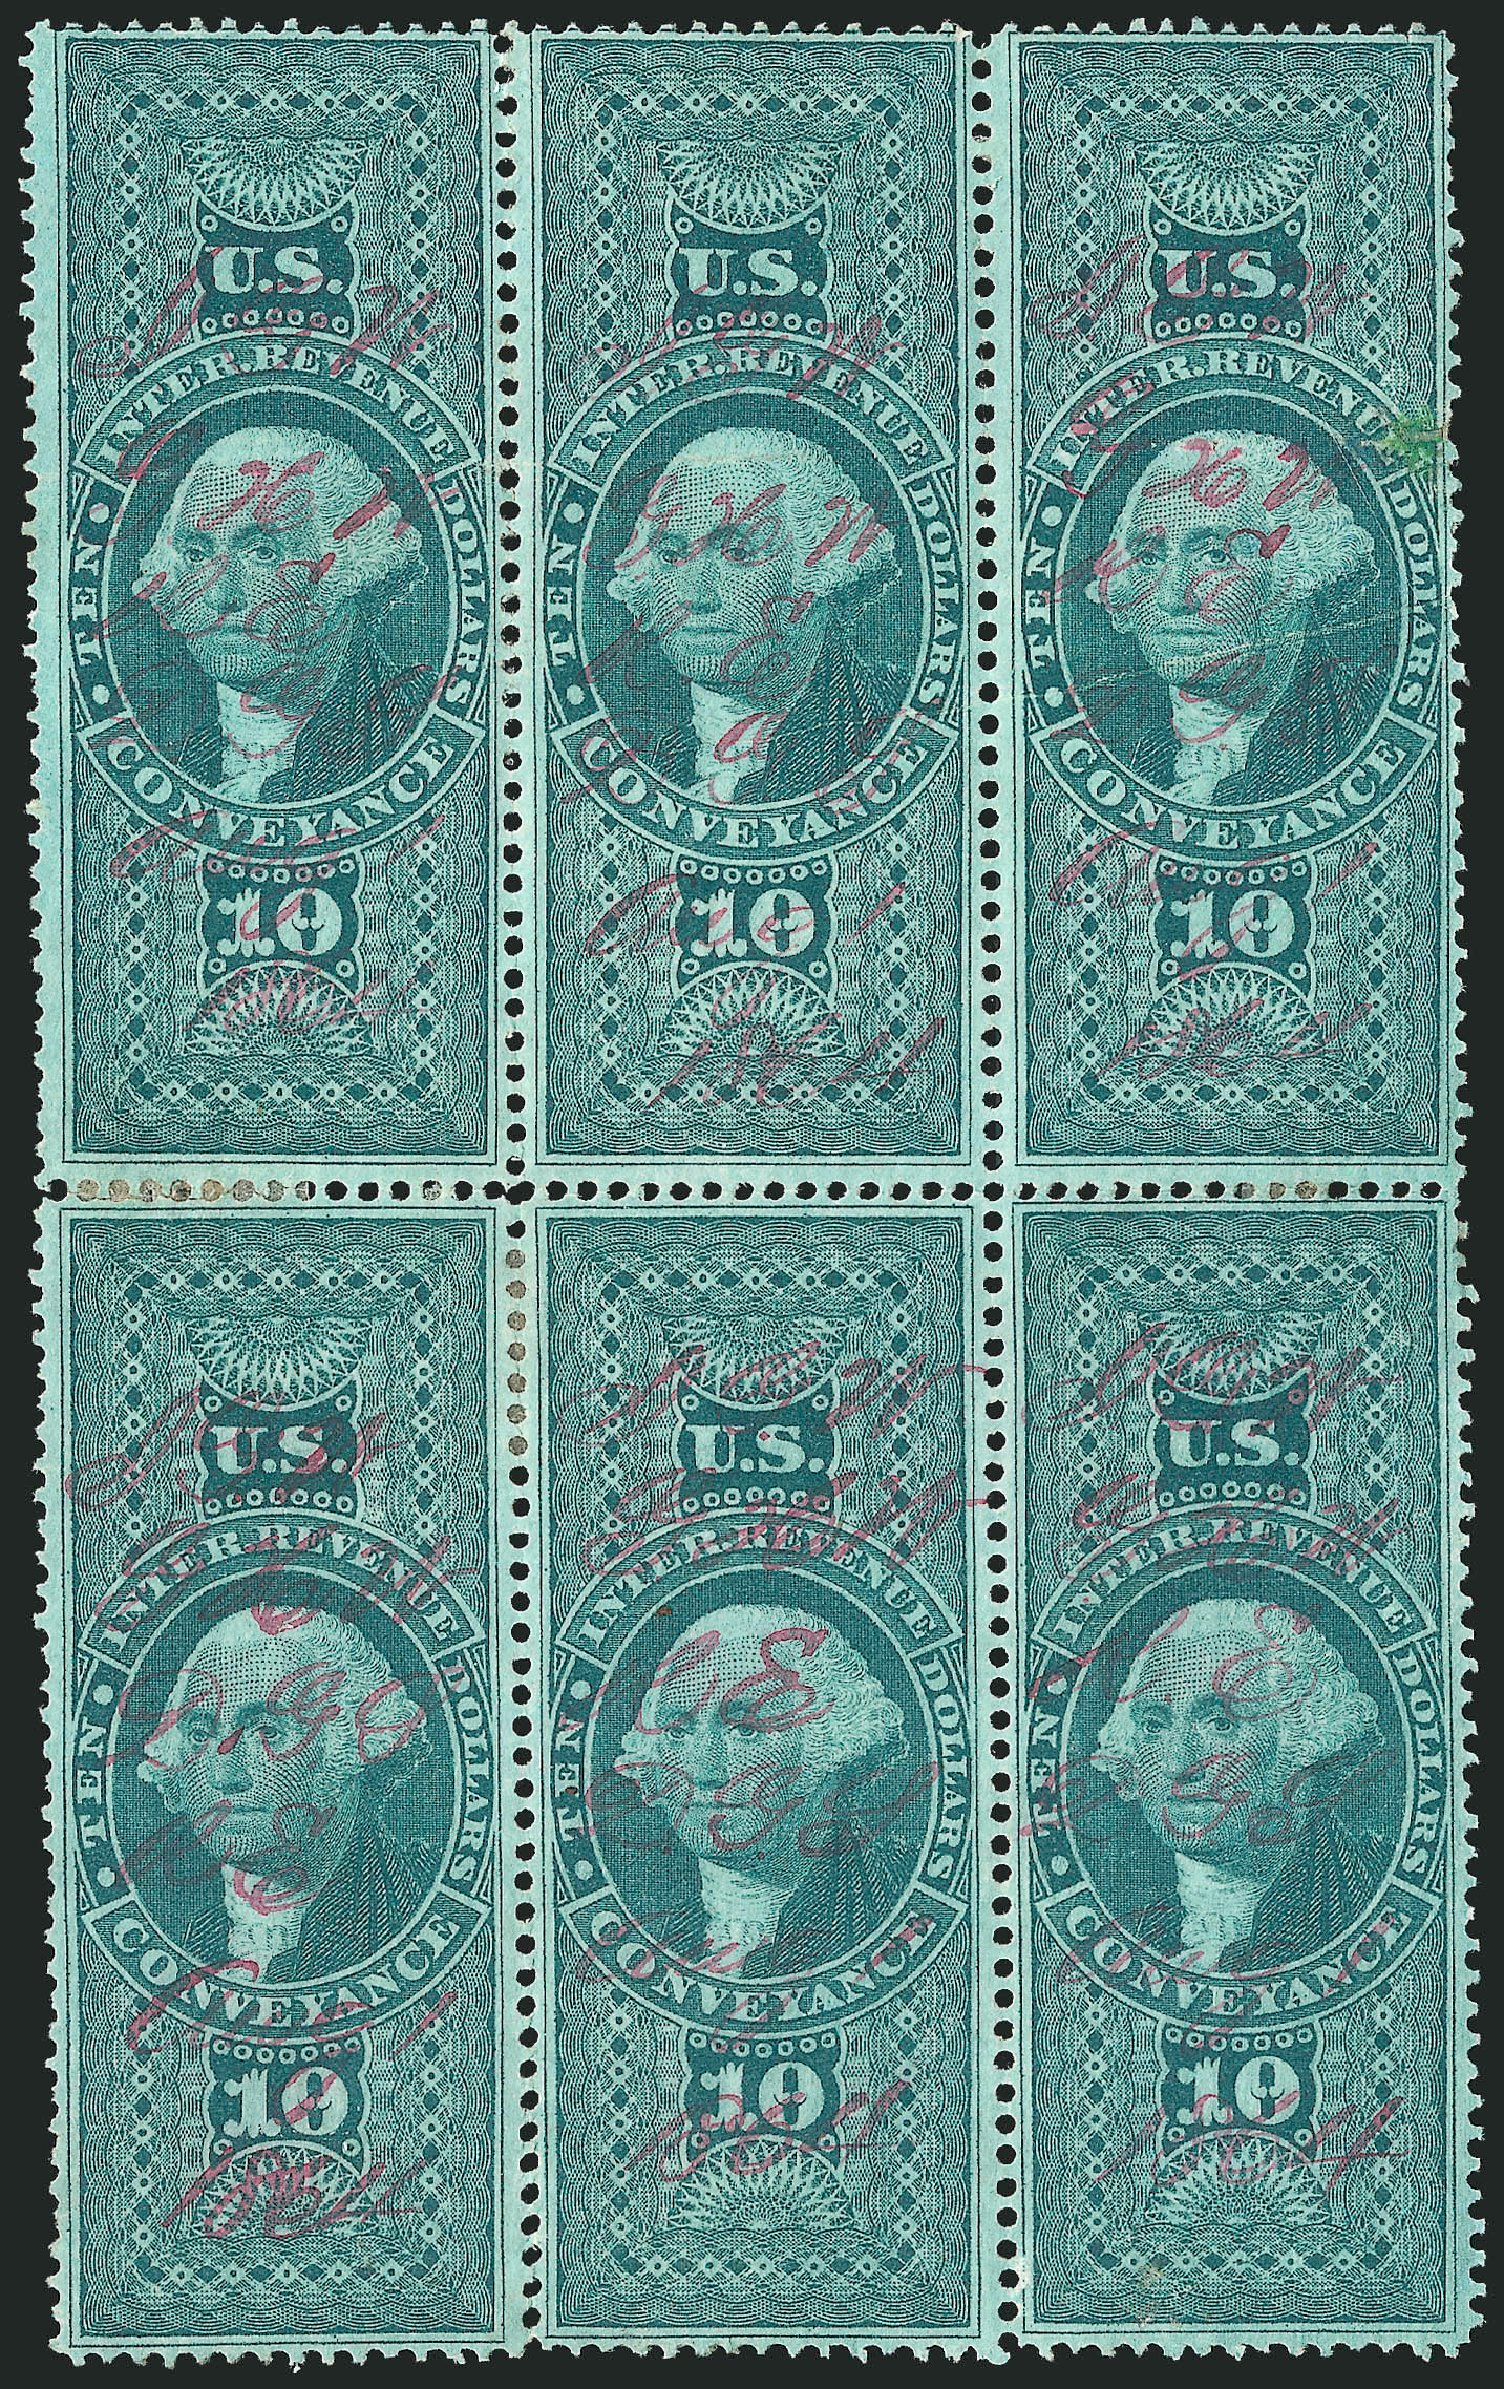 Price of US Stamp Scott Catalog #R94 - US$10.00 1862 Revenue Conveyance. Robert Siegel Auction Galleries, Dec 2014, Sale 1089, Lot 442